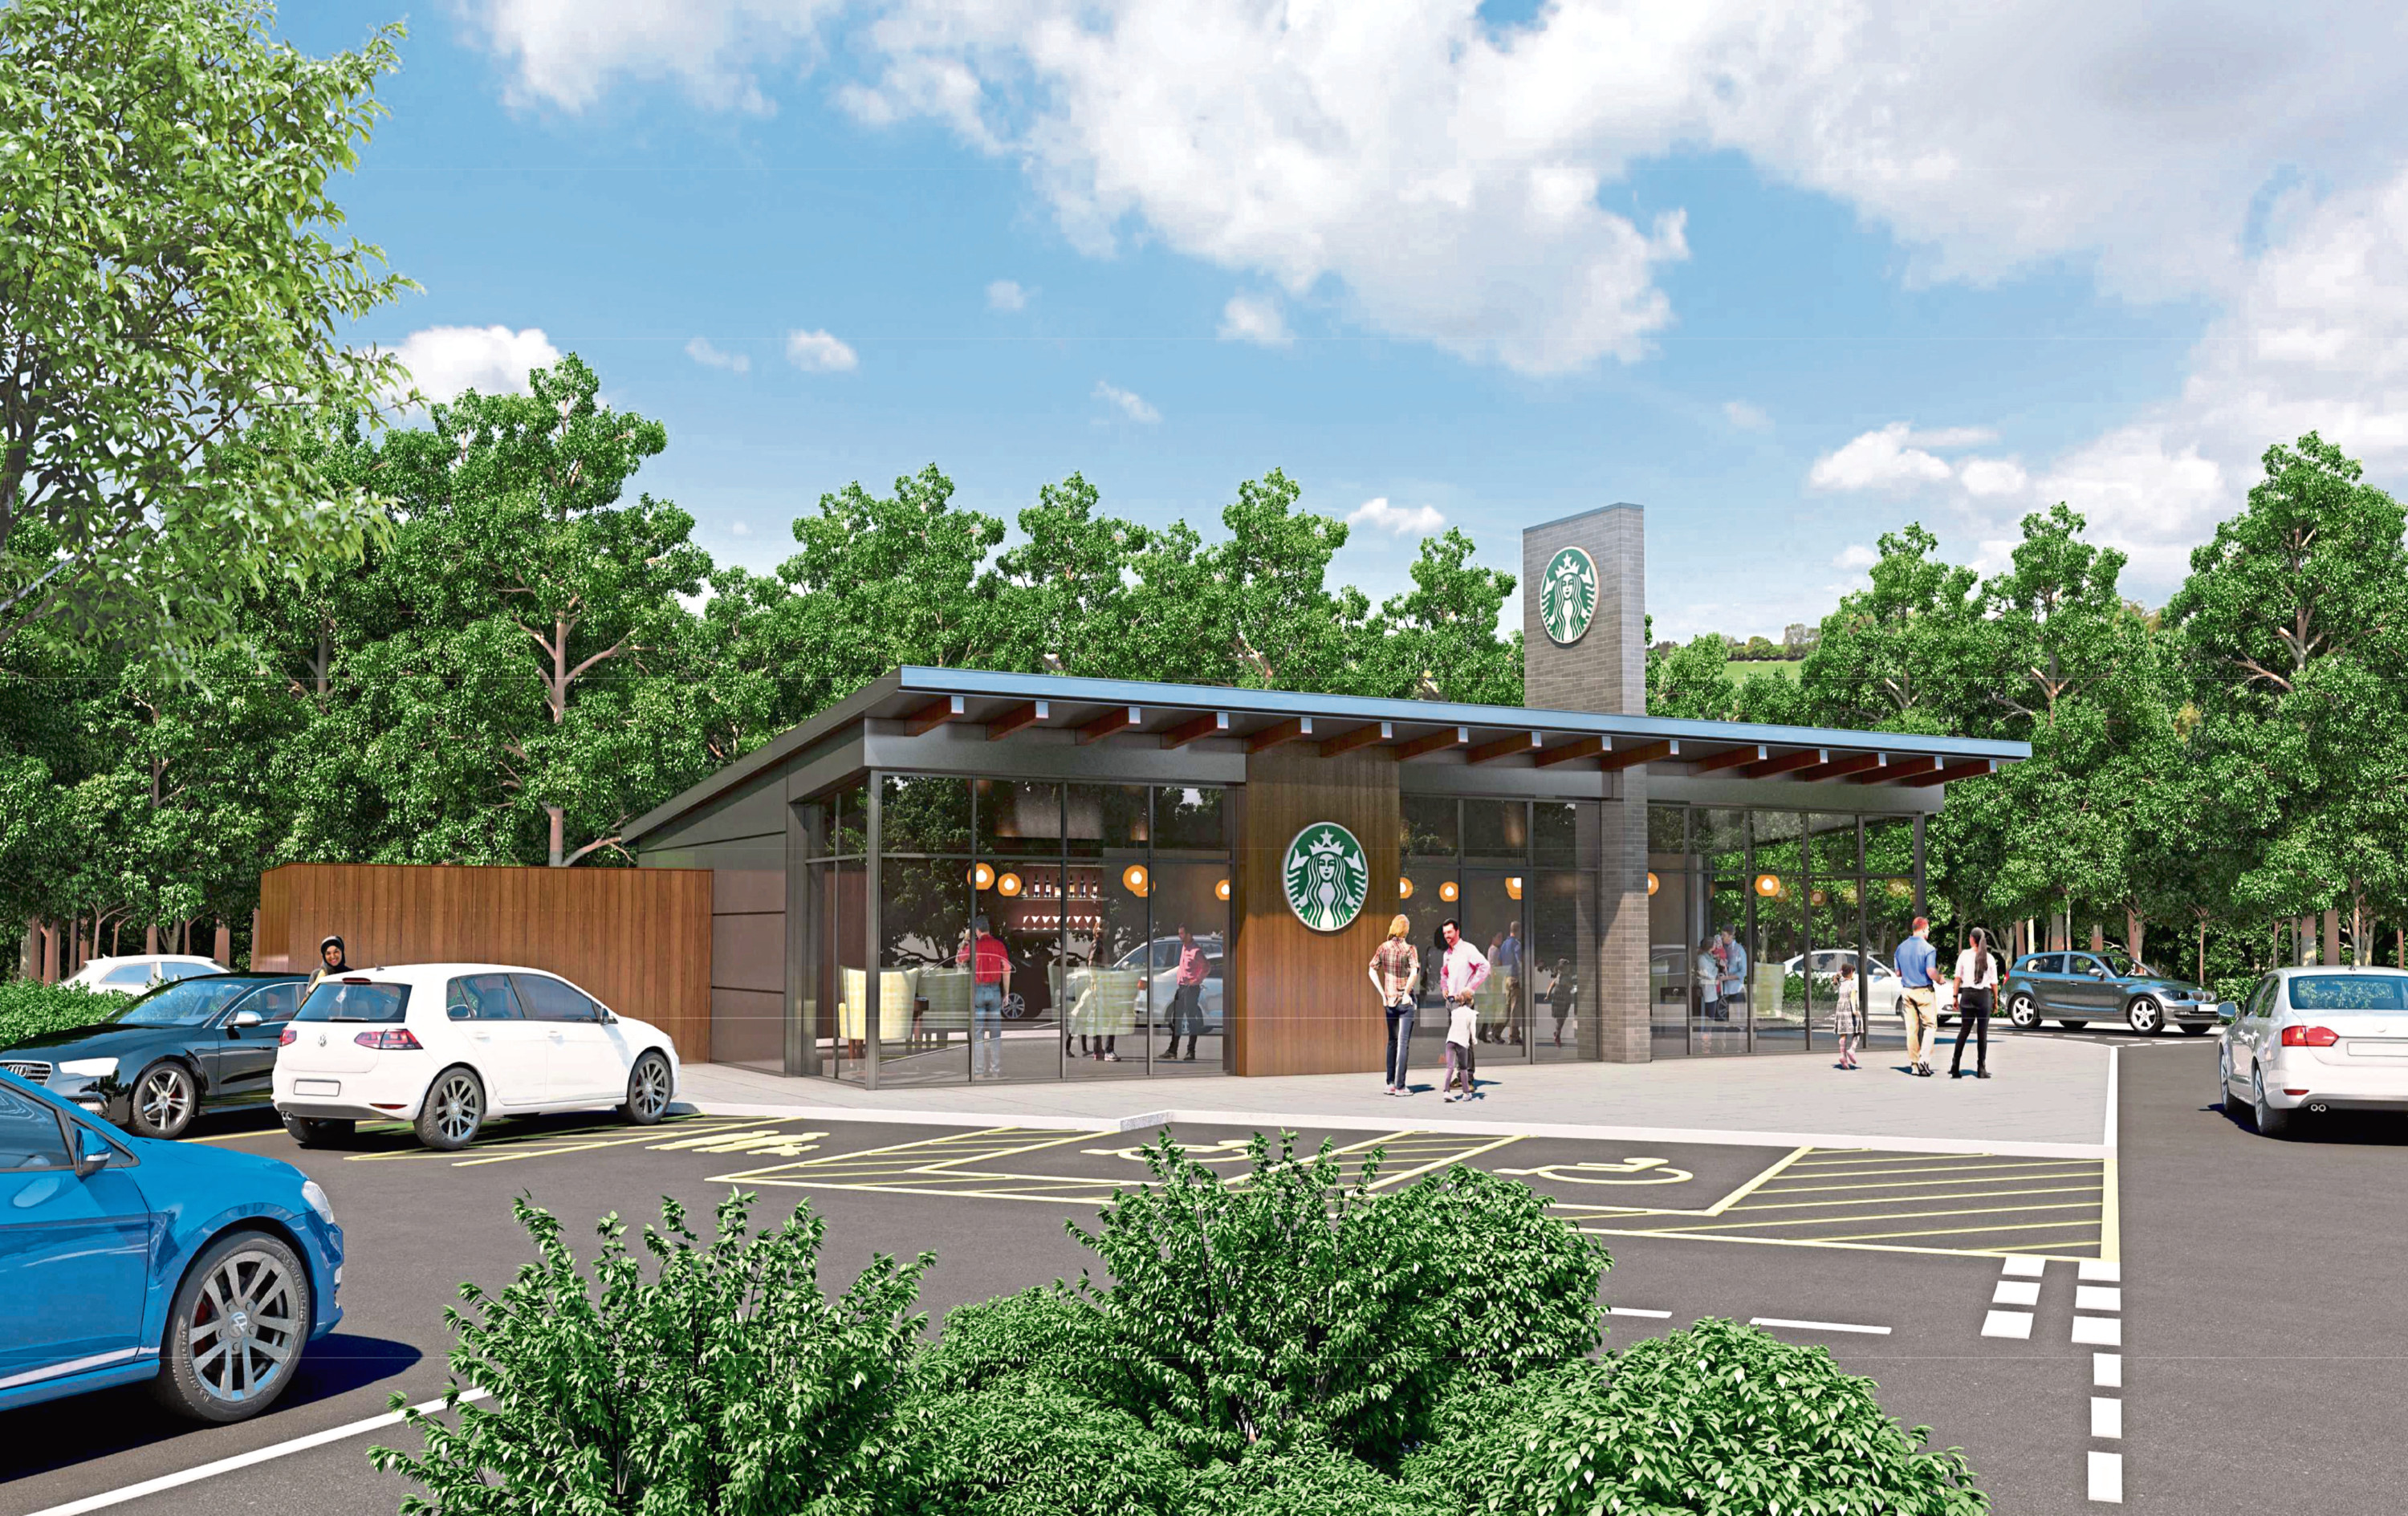 Artists illustration of a proposed new Starbucks on Afton Way, Dundee. To go with story by Jon Brady